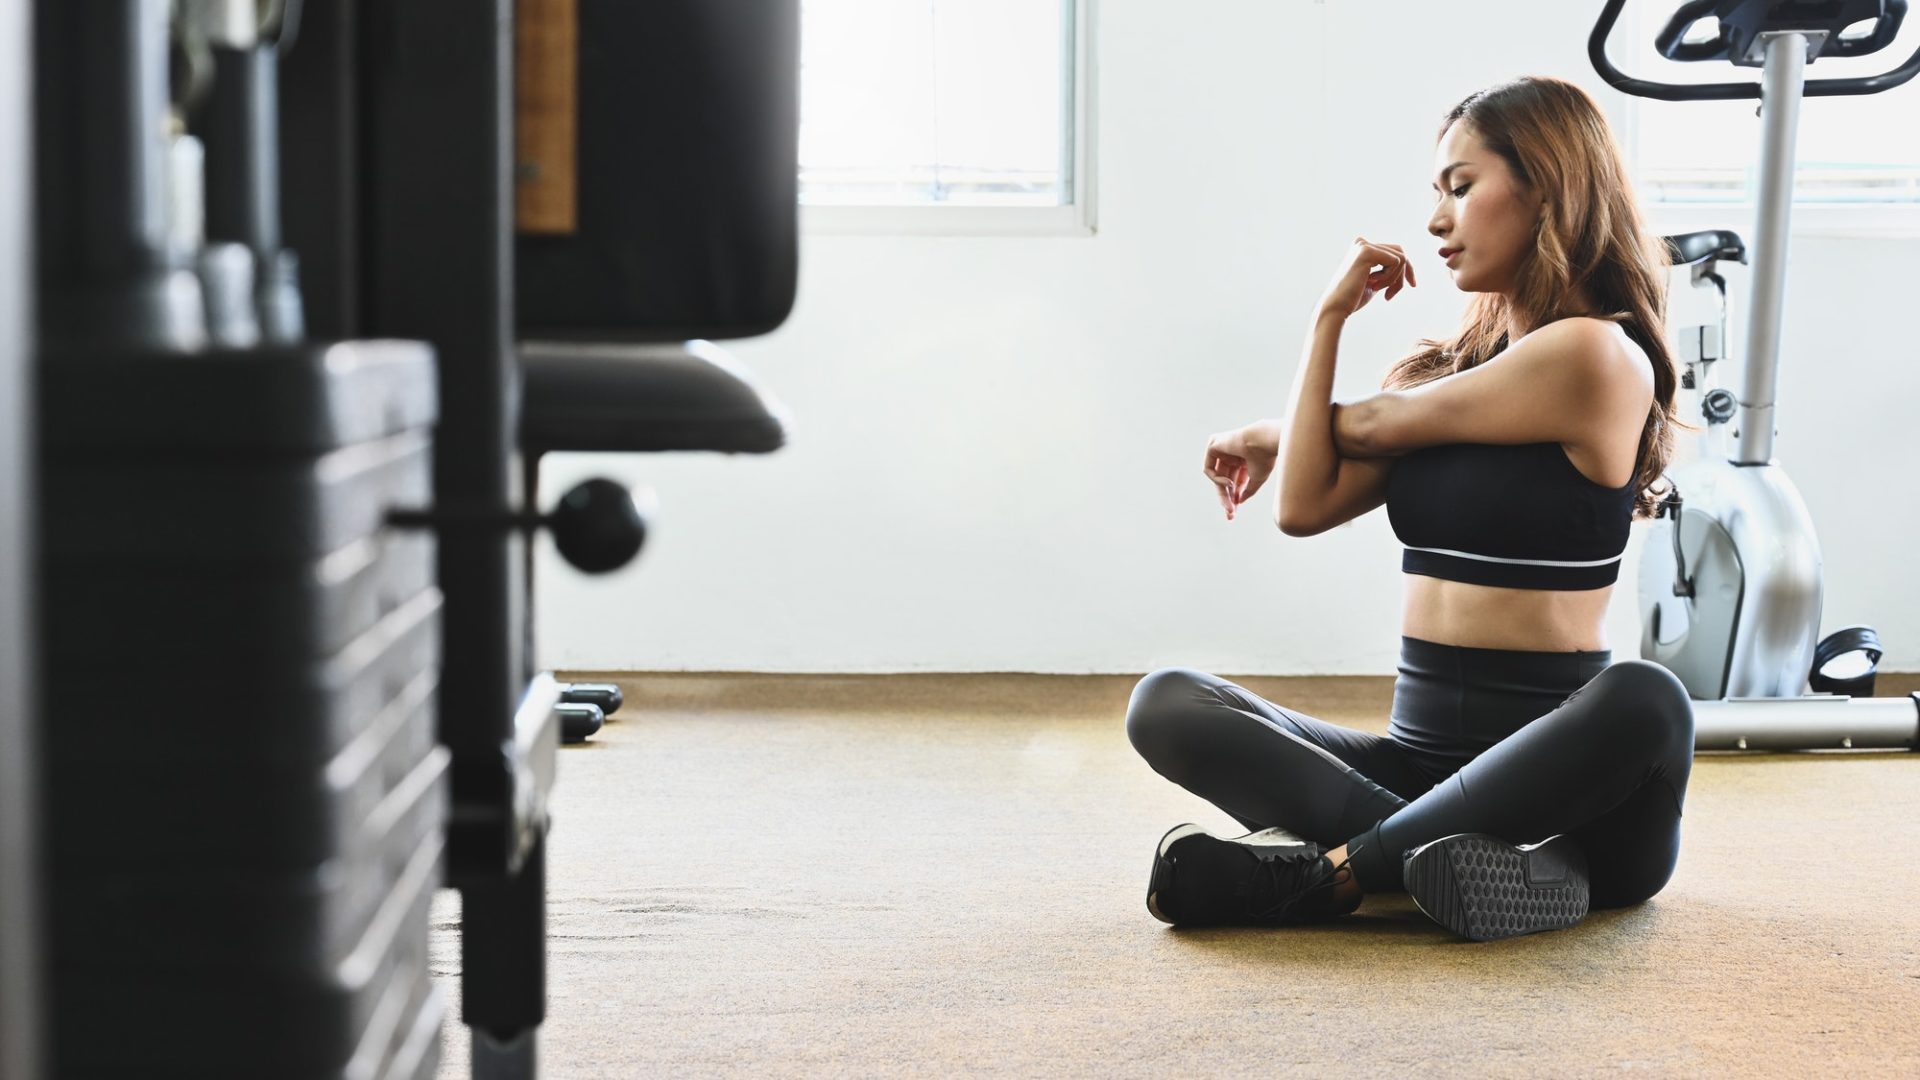 Young Woman stretching before a gym workout.